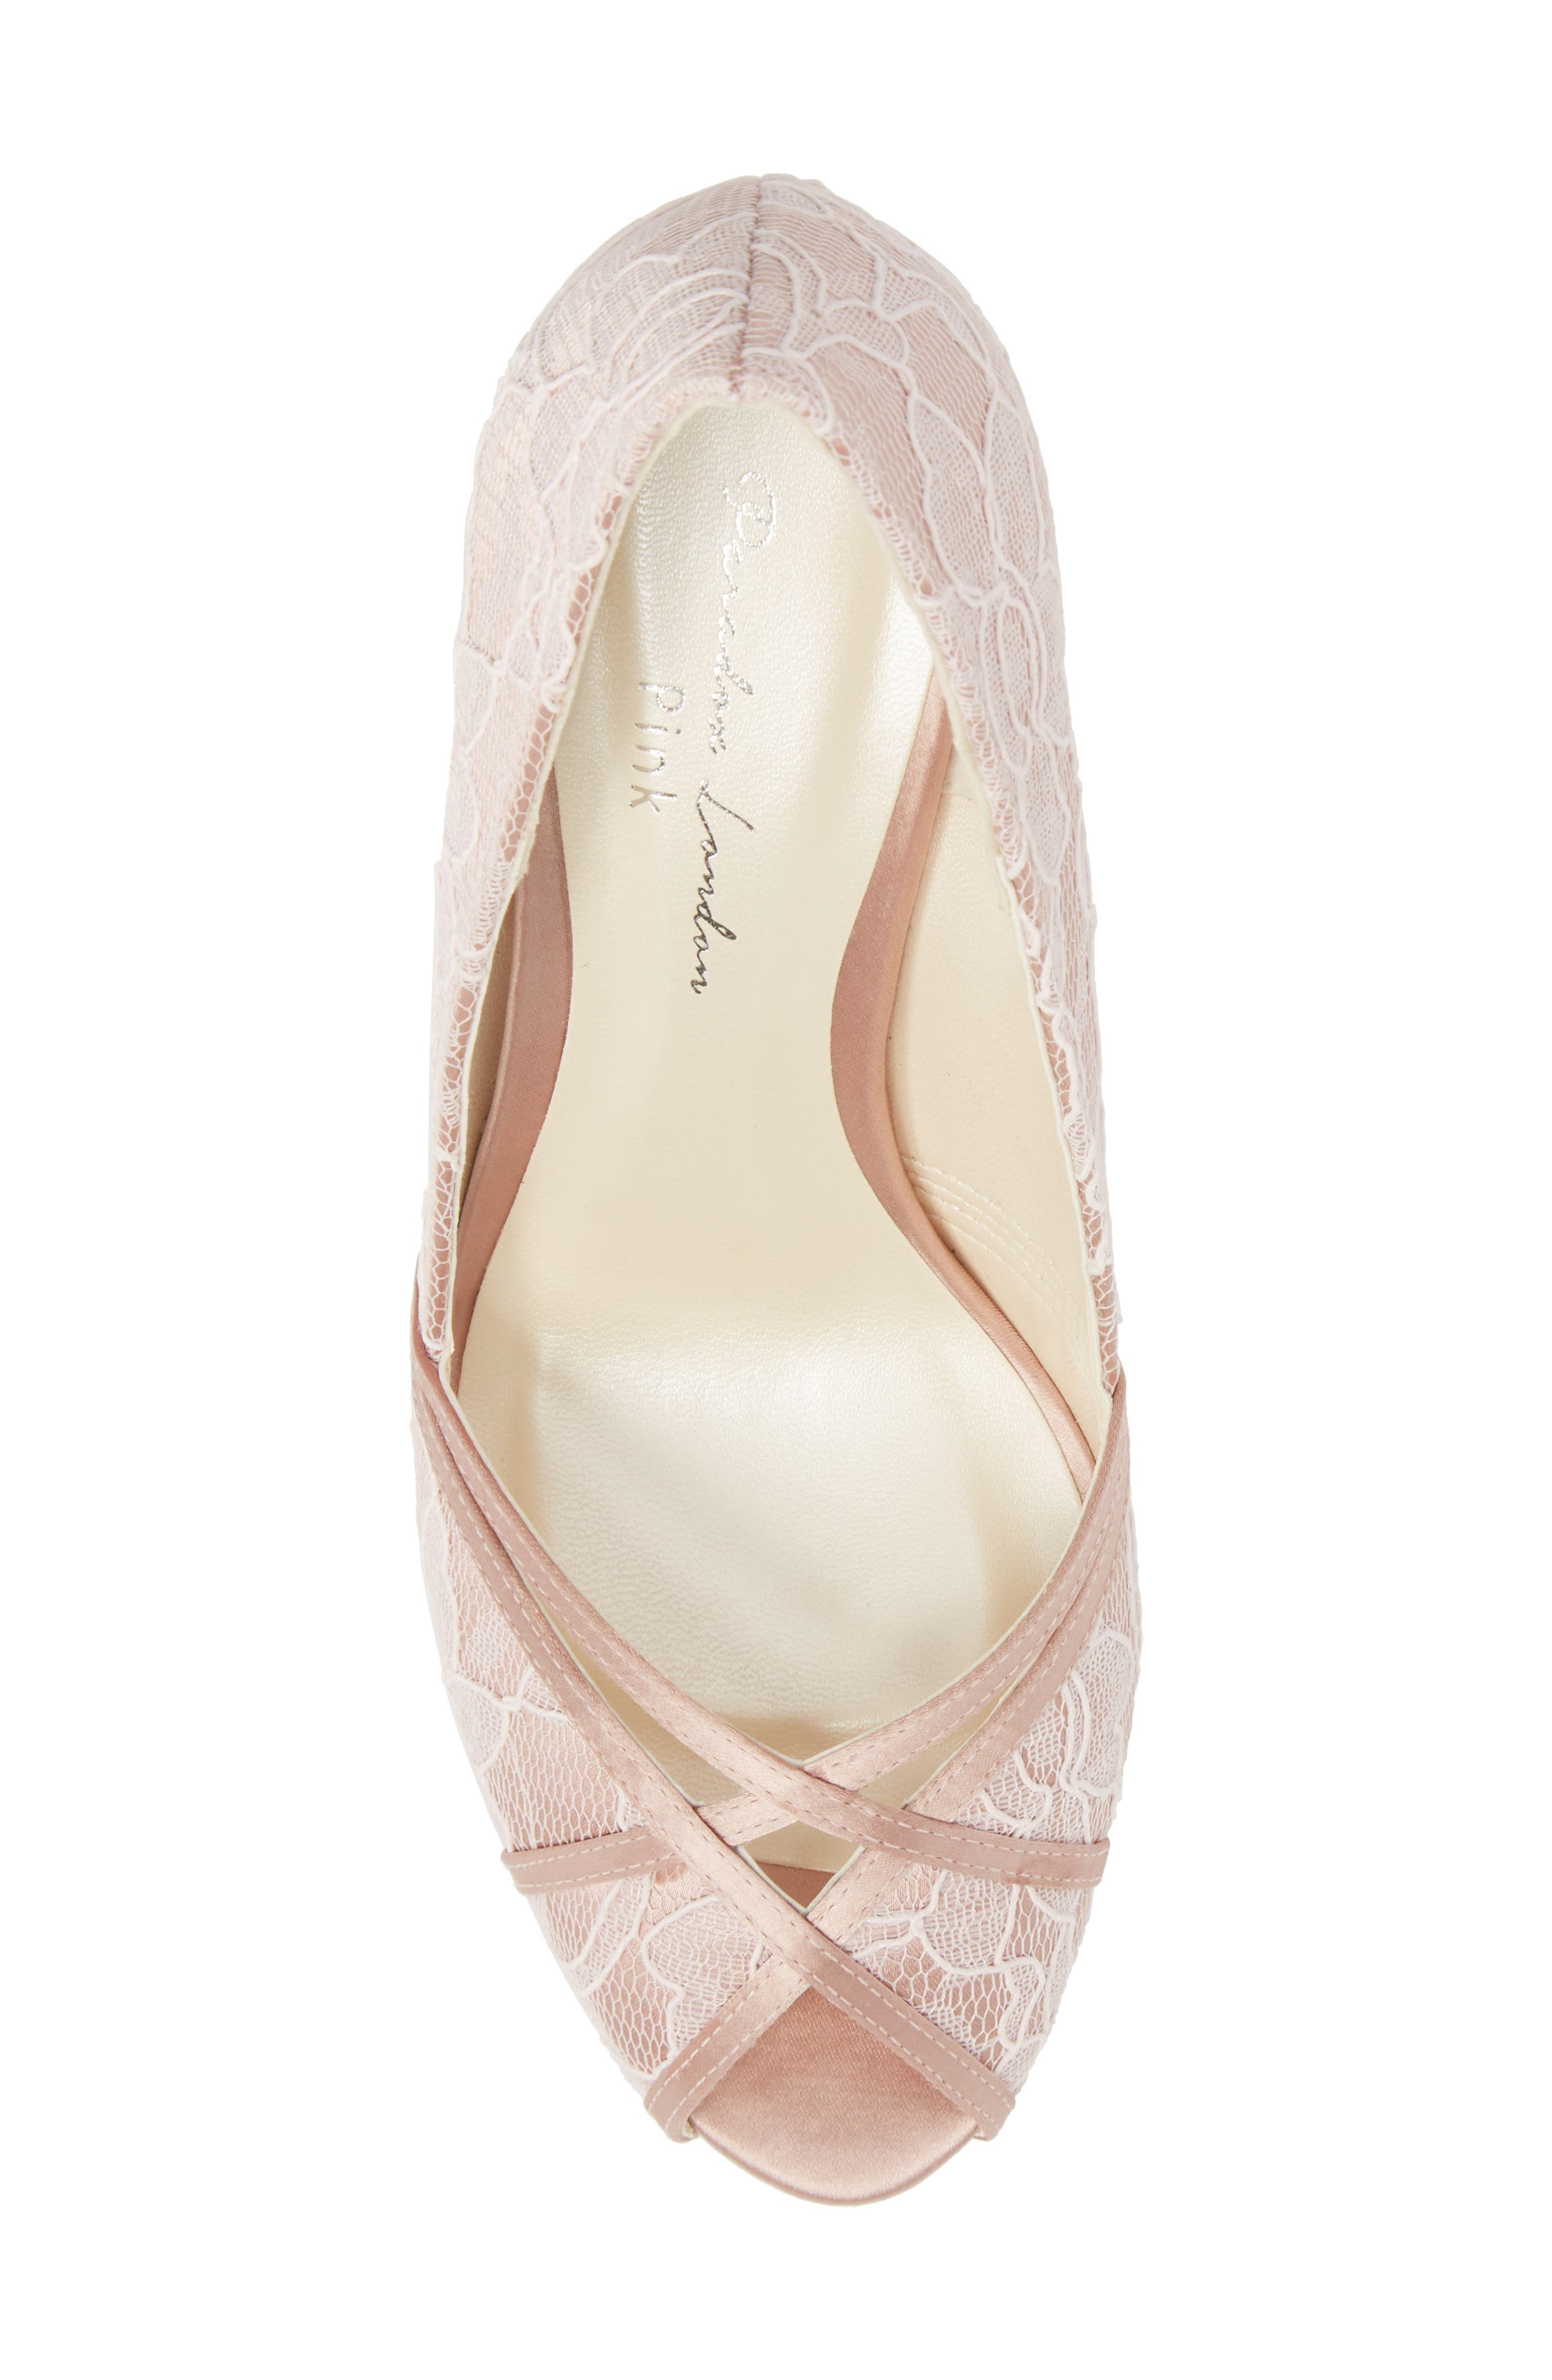 Cherie Embroidered Peep Toe Pump,                             Alternate thumbnail 5, color,                             BLUSH SATIN